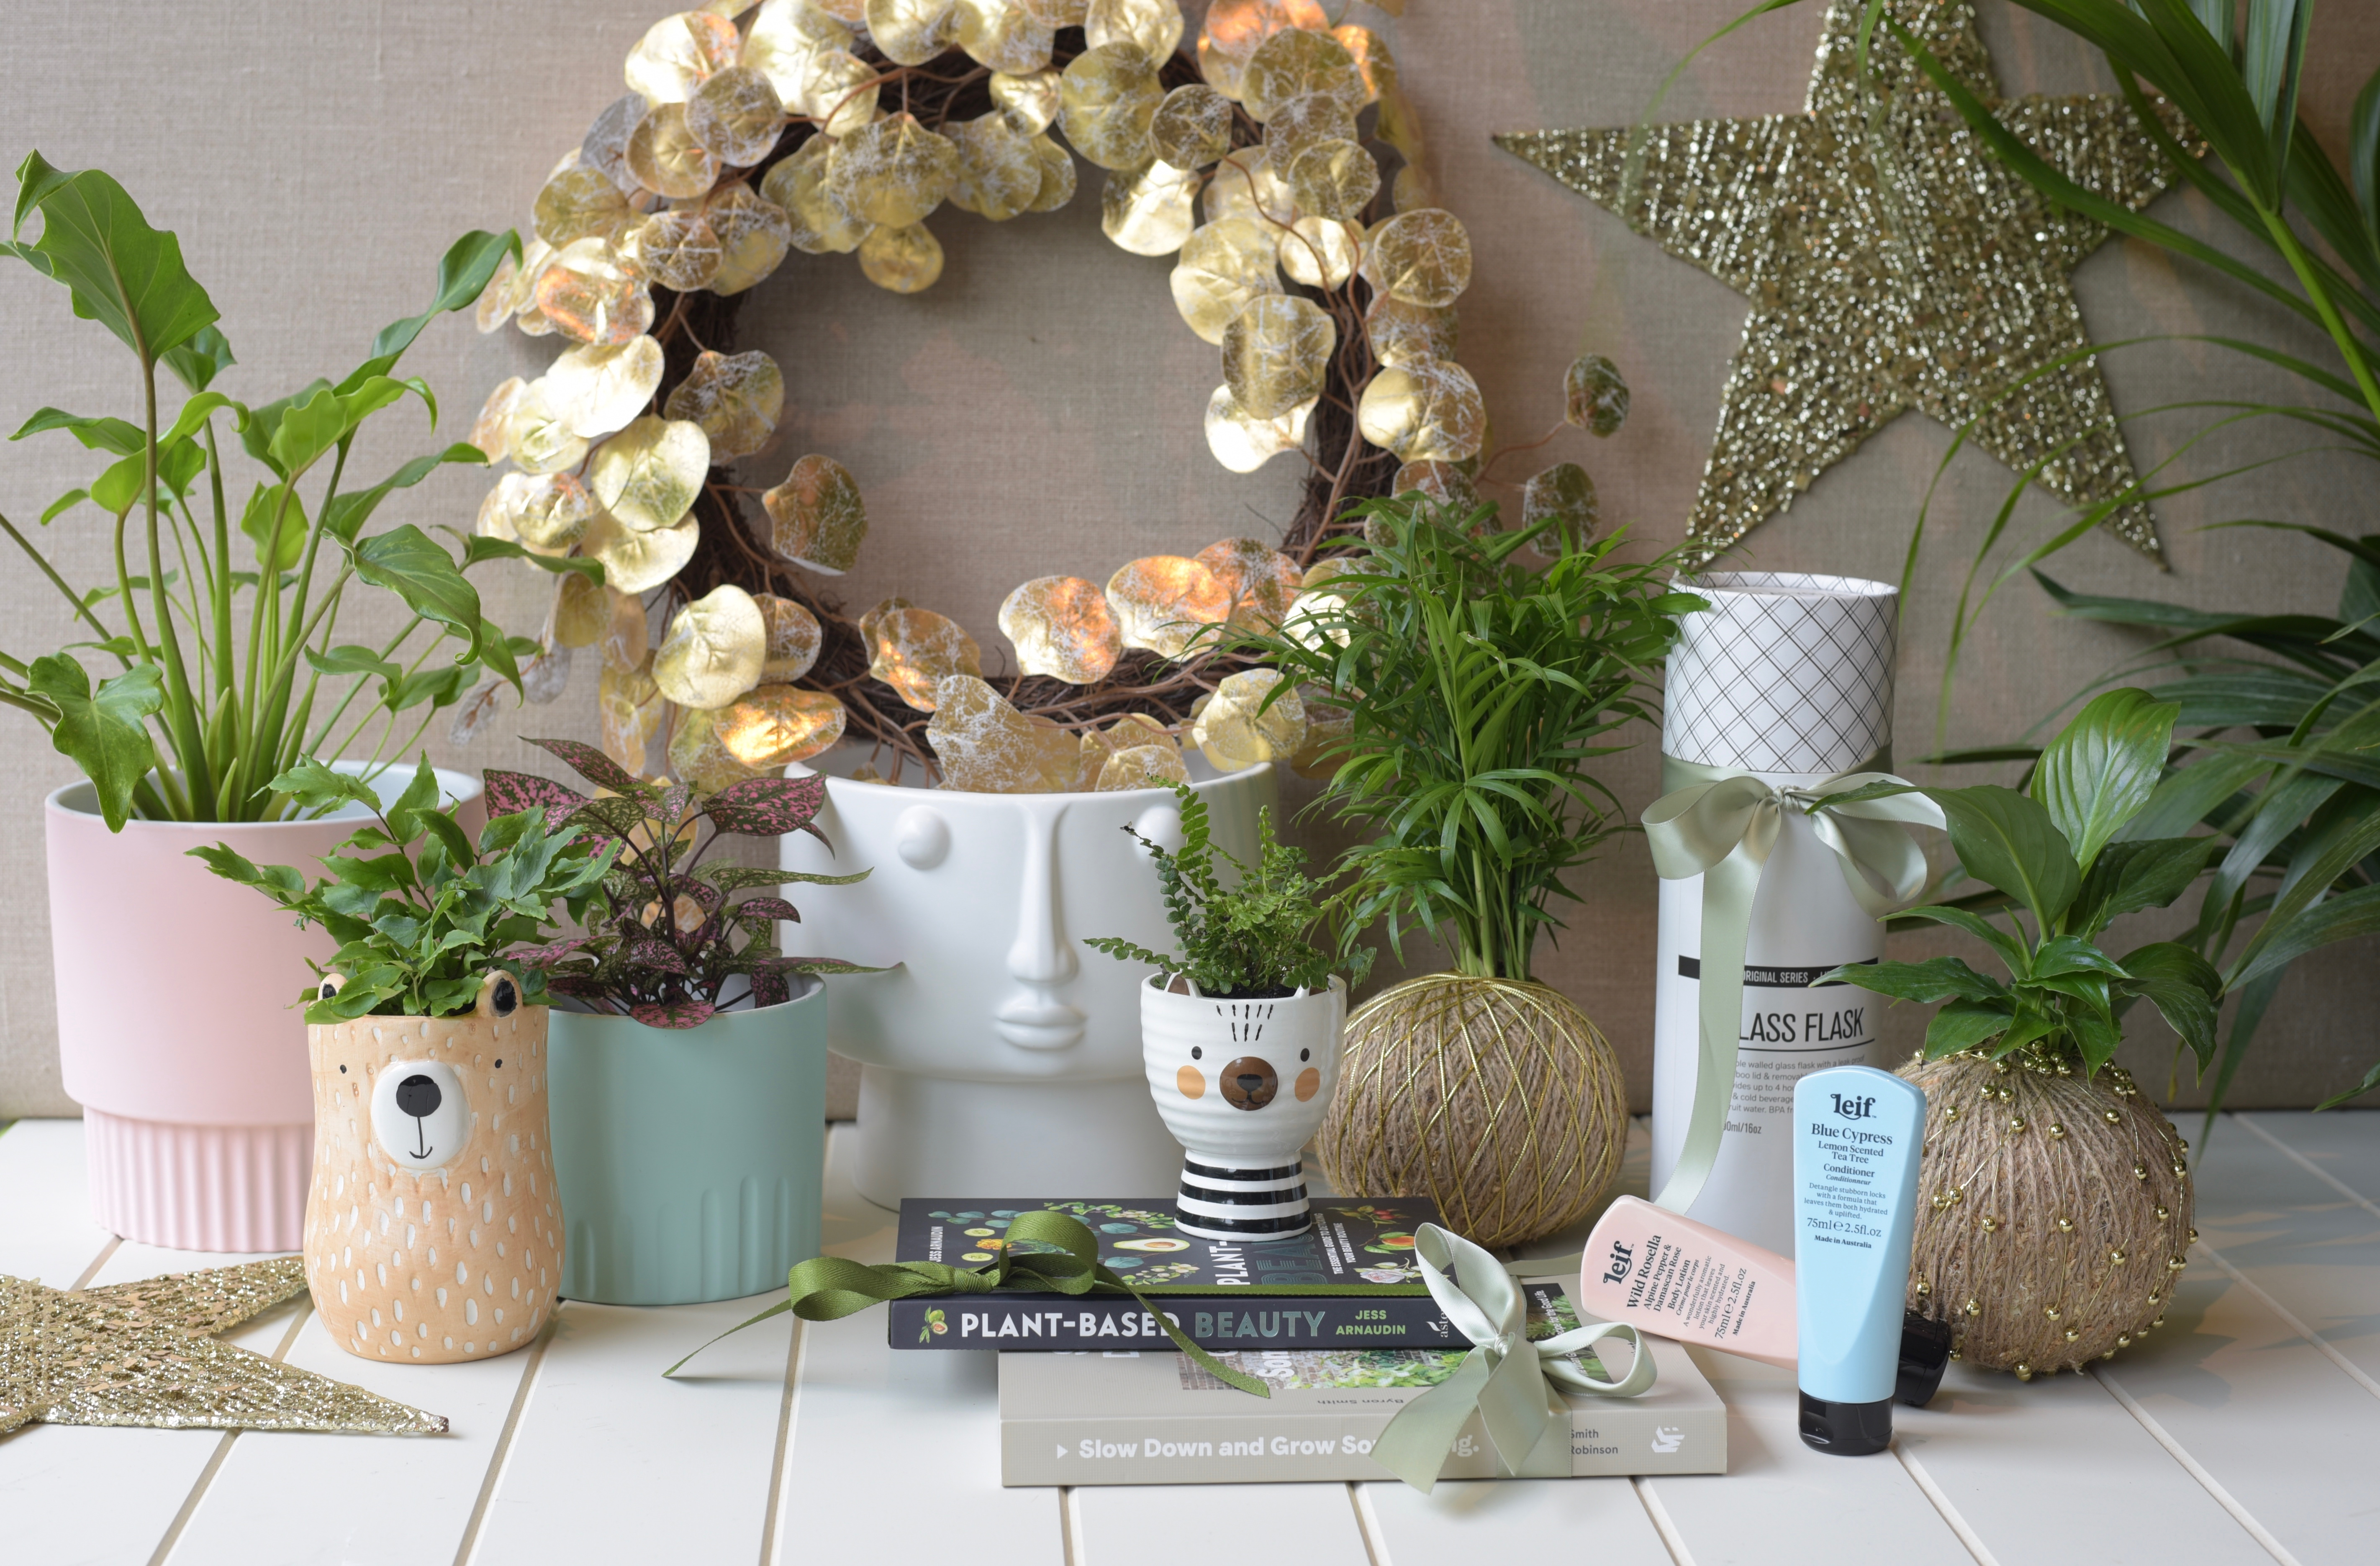 Gro Urban Oasis gifts and homewares